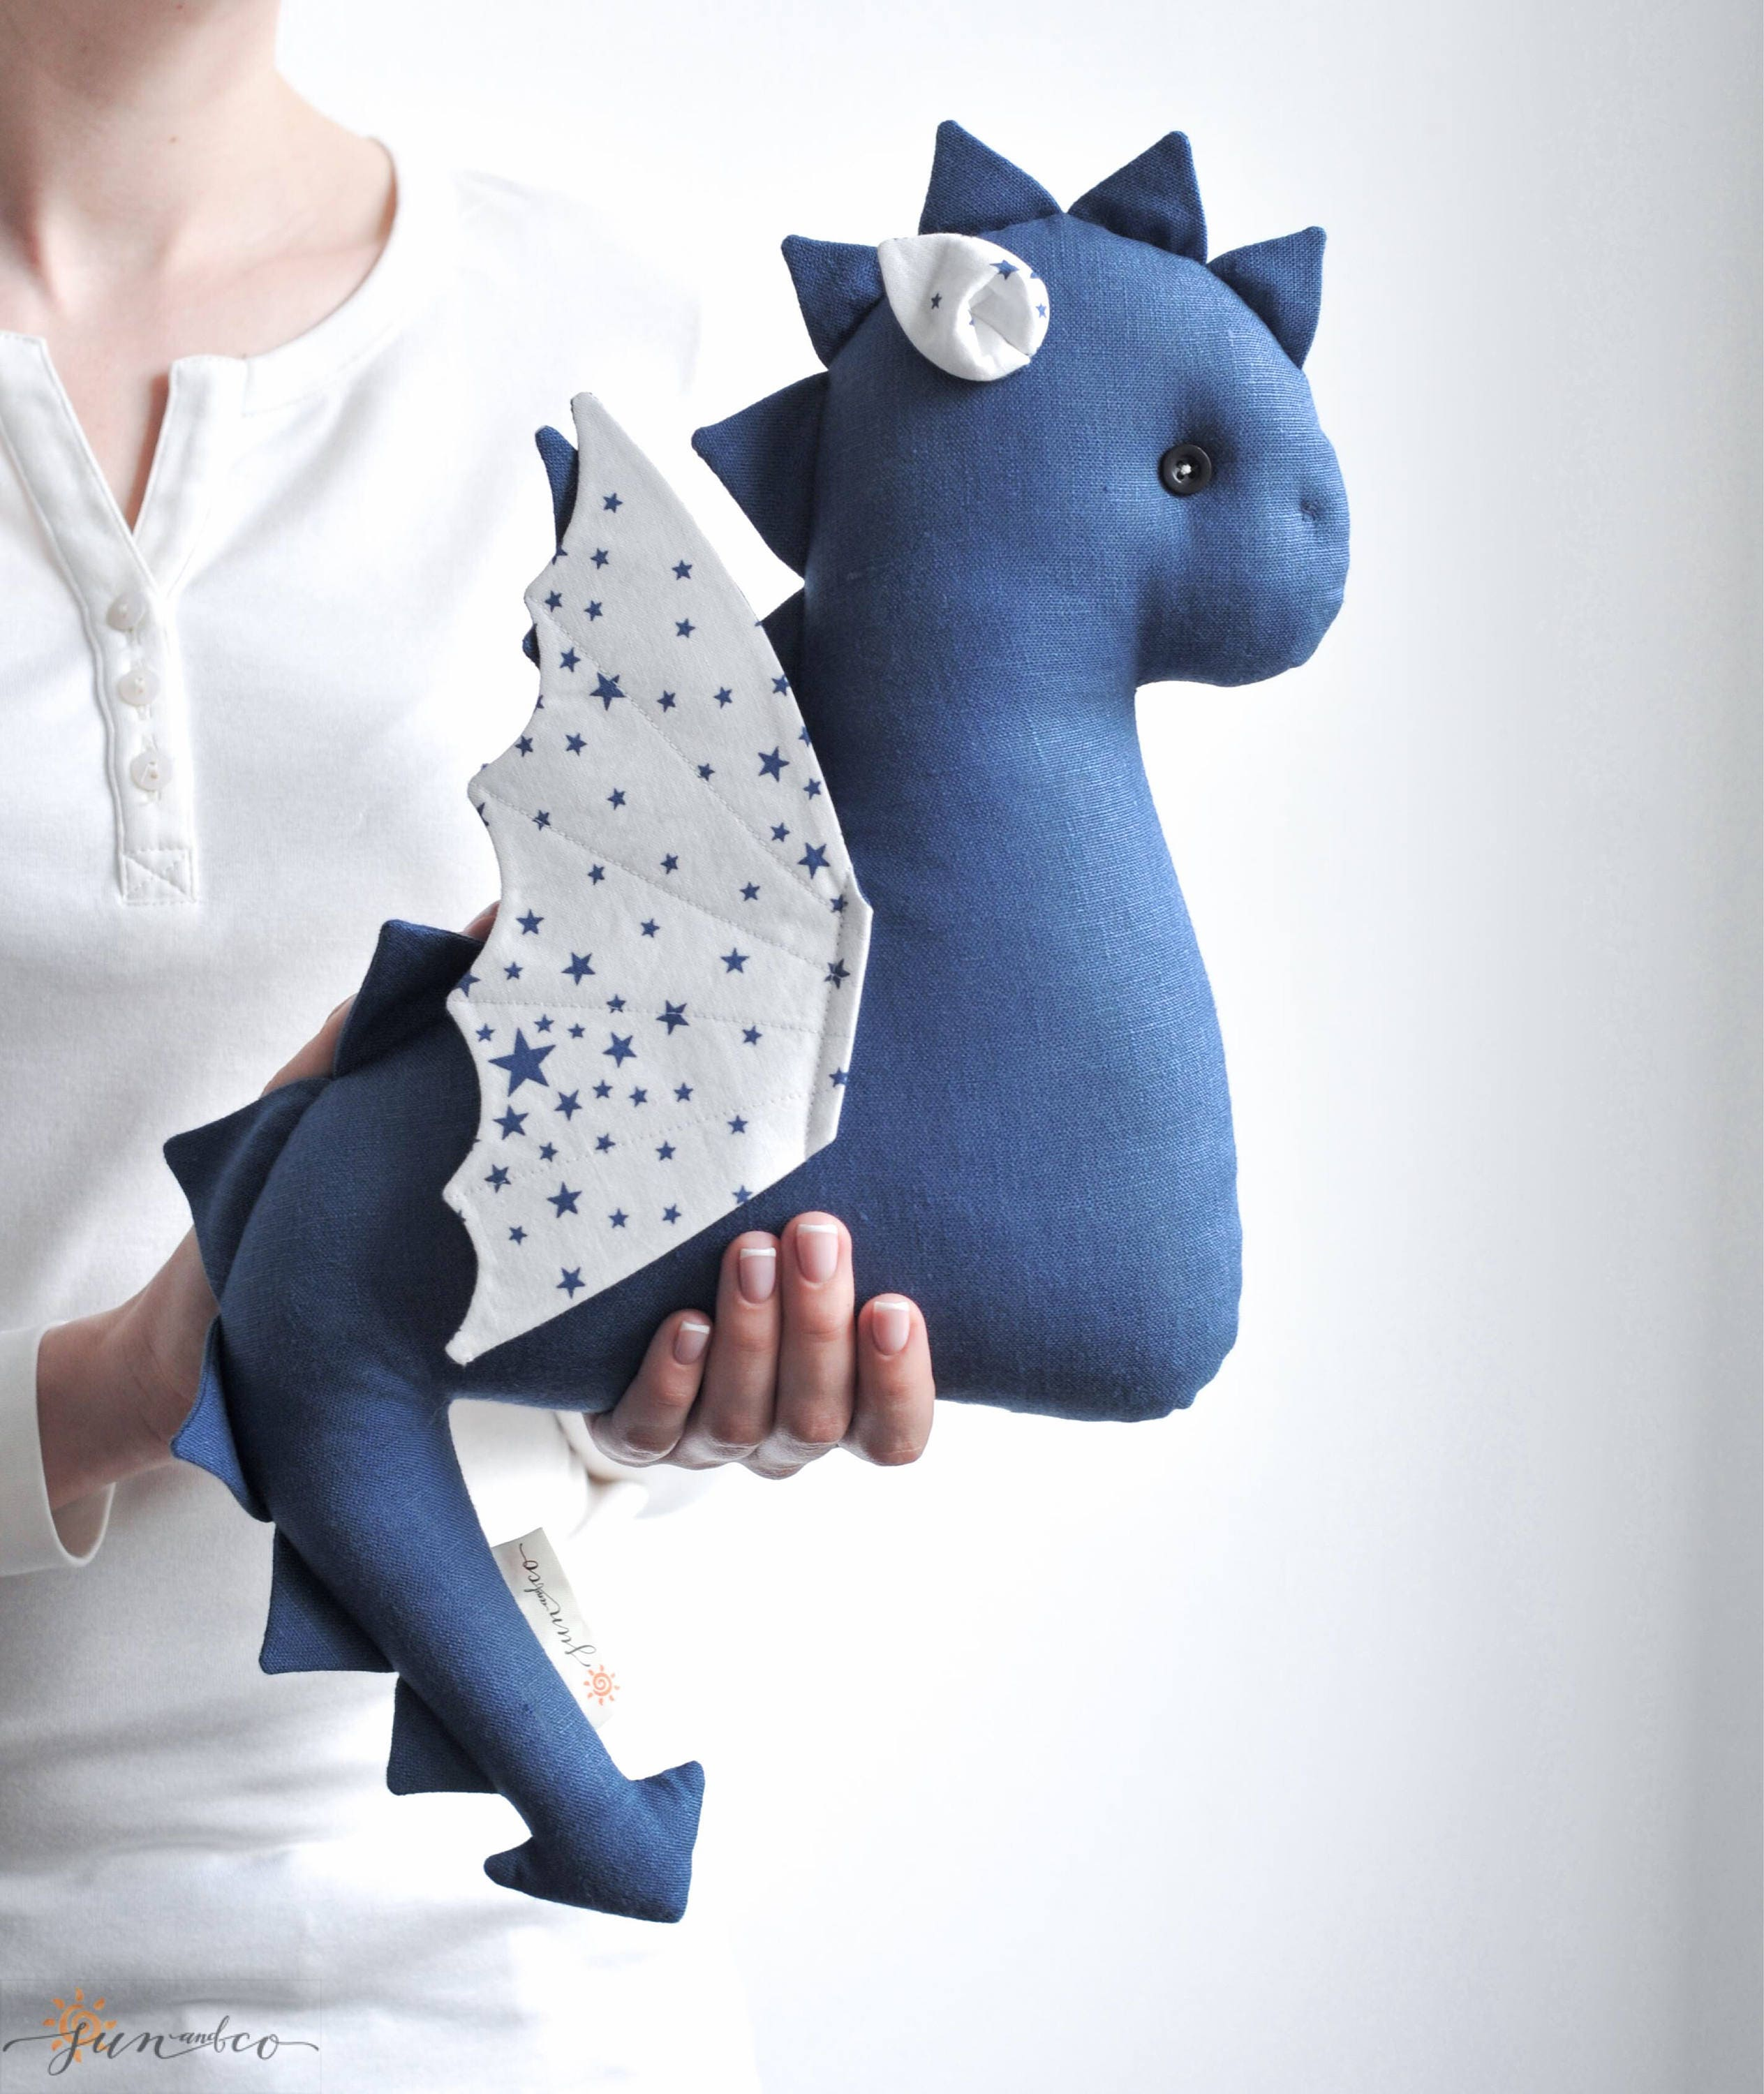 baby dragon stuffed dragon toy gift for kids stuffed toy. Black Bedroom Furniture Sets. Home Design Ideas